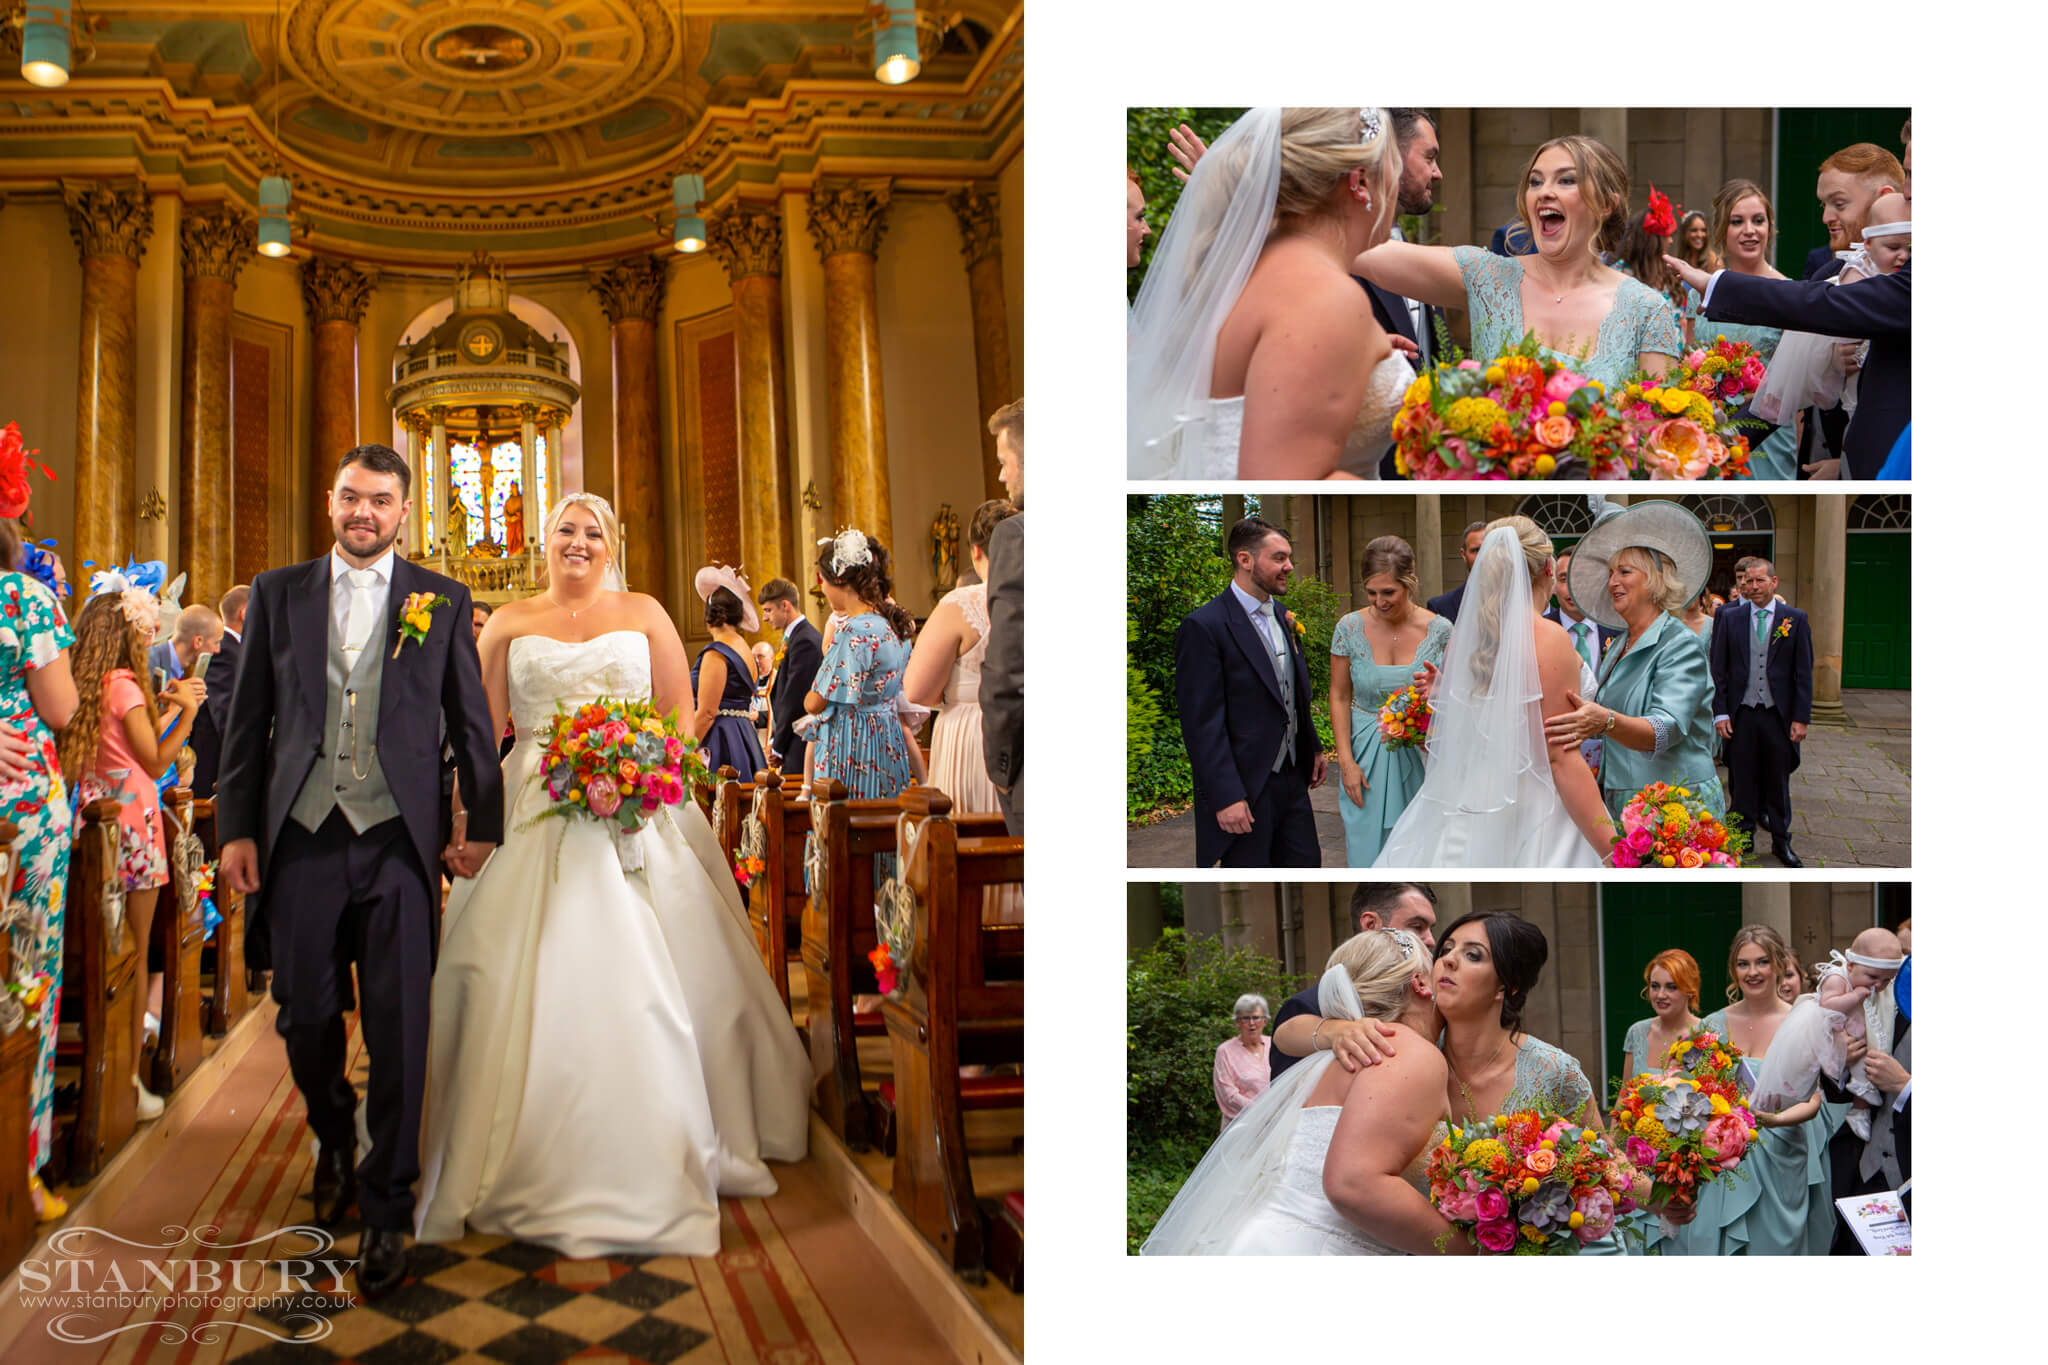 best-lancashire-wedding-photographers-stanbury-photography-017